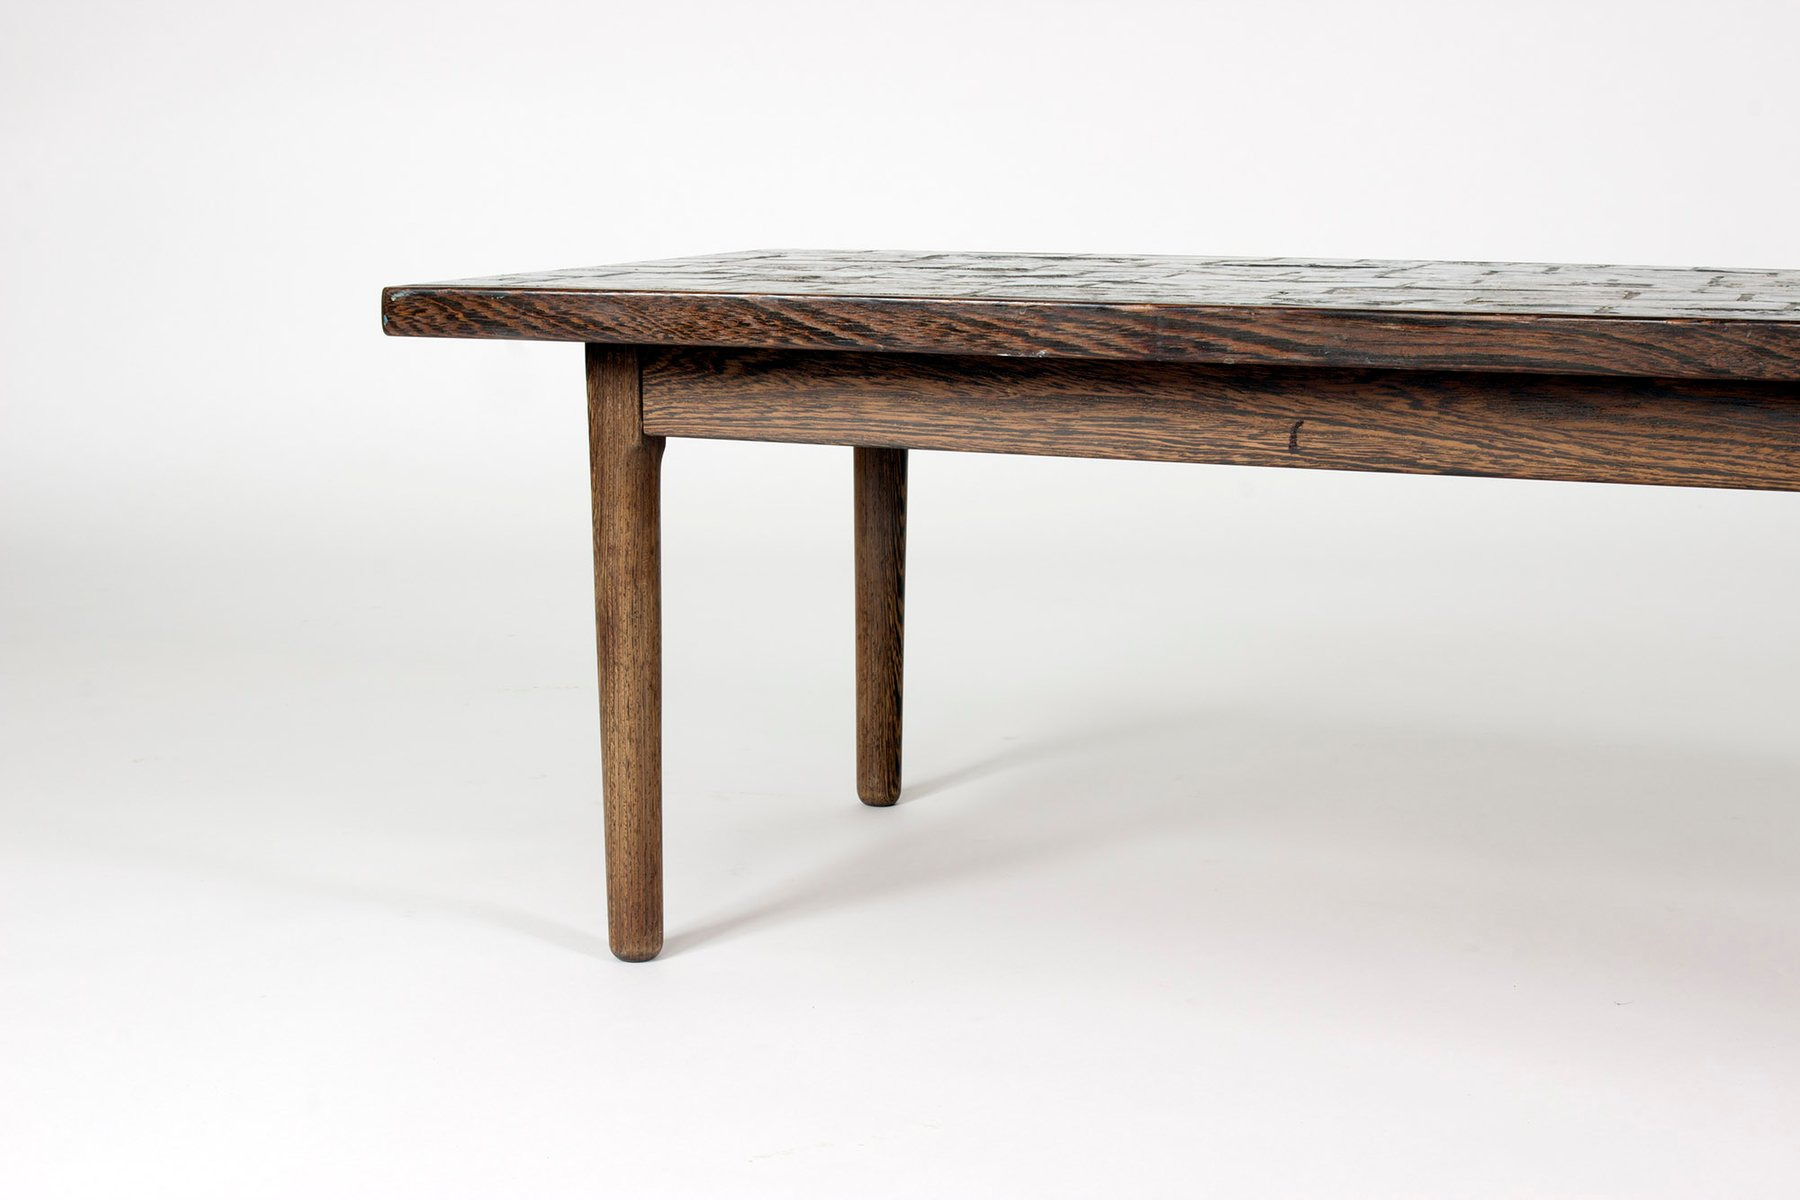 Wenge And Stoneware Coffee Table By Bj Rn Wiinblad 1960s For Sale At Pamono